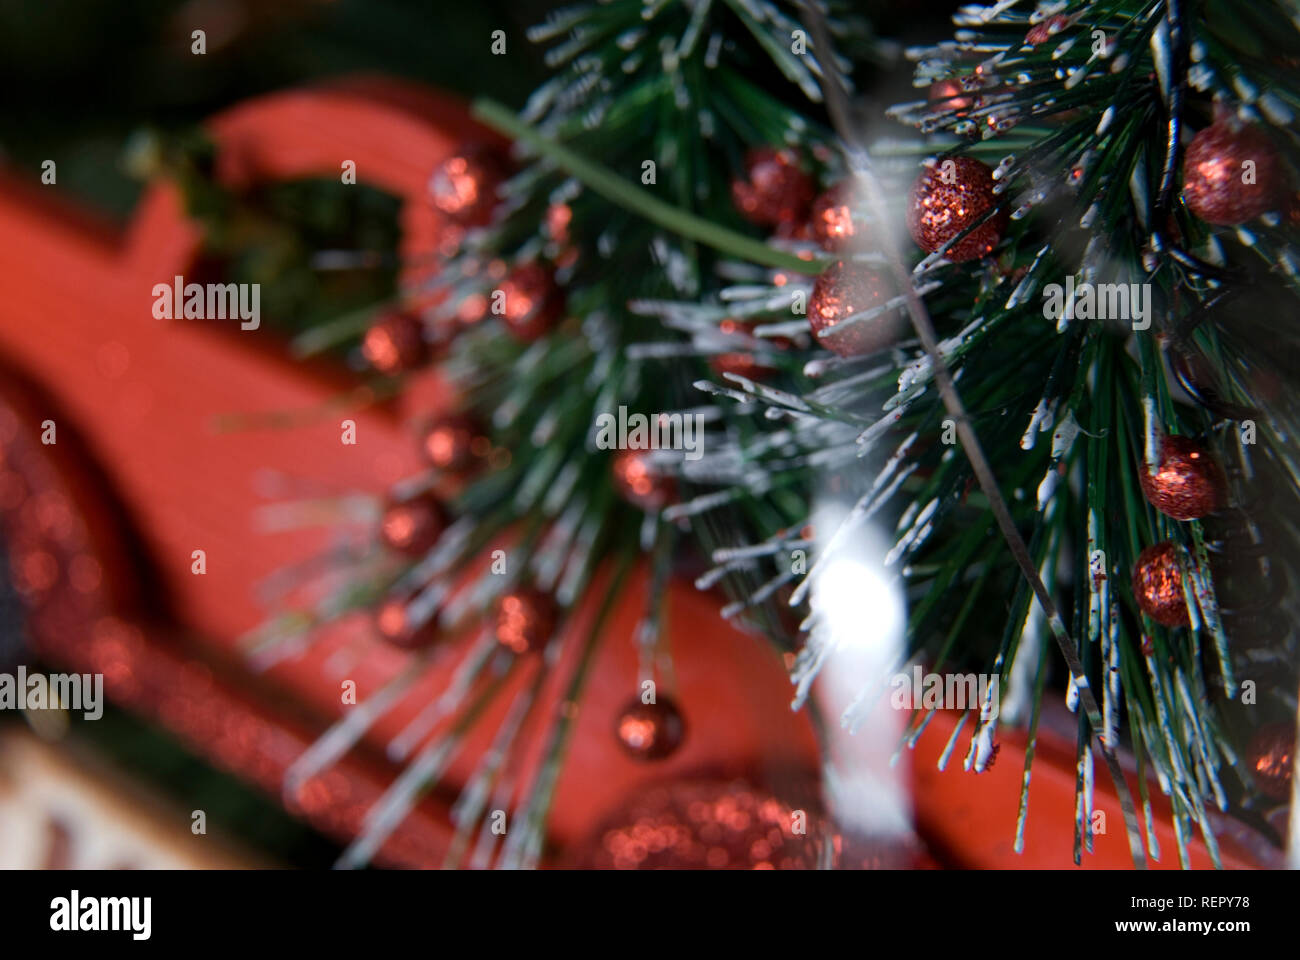 Vieux camion Christmas ornament hanging on tree, USA. Banque D'Images